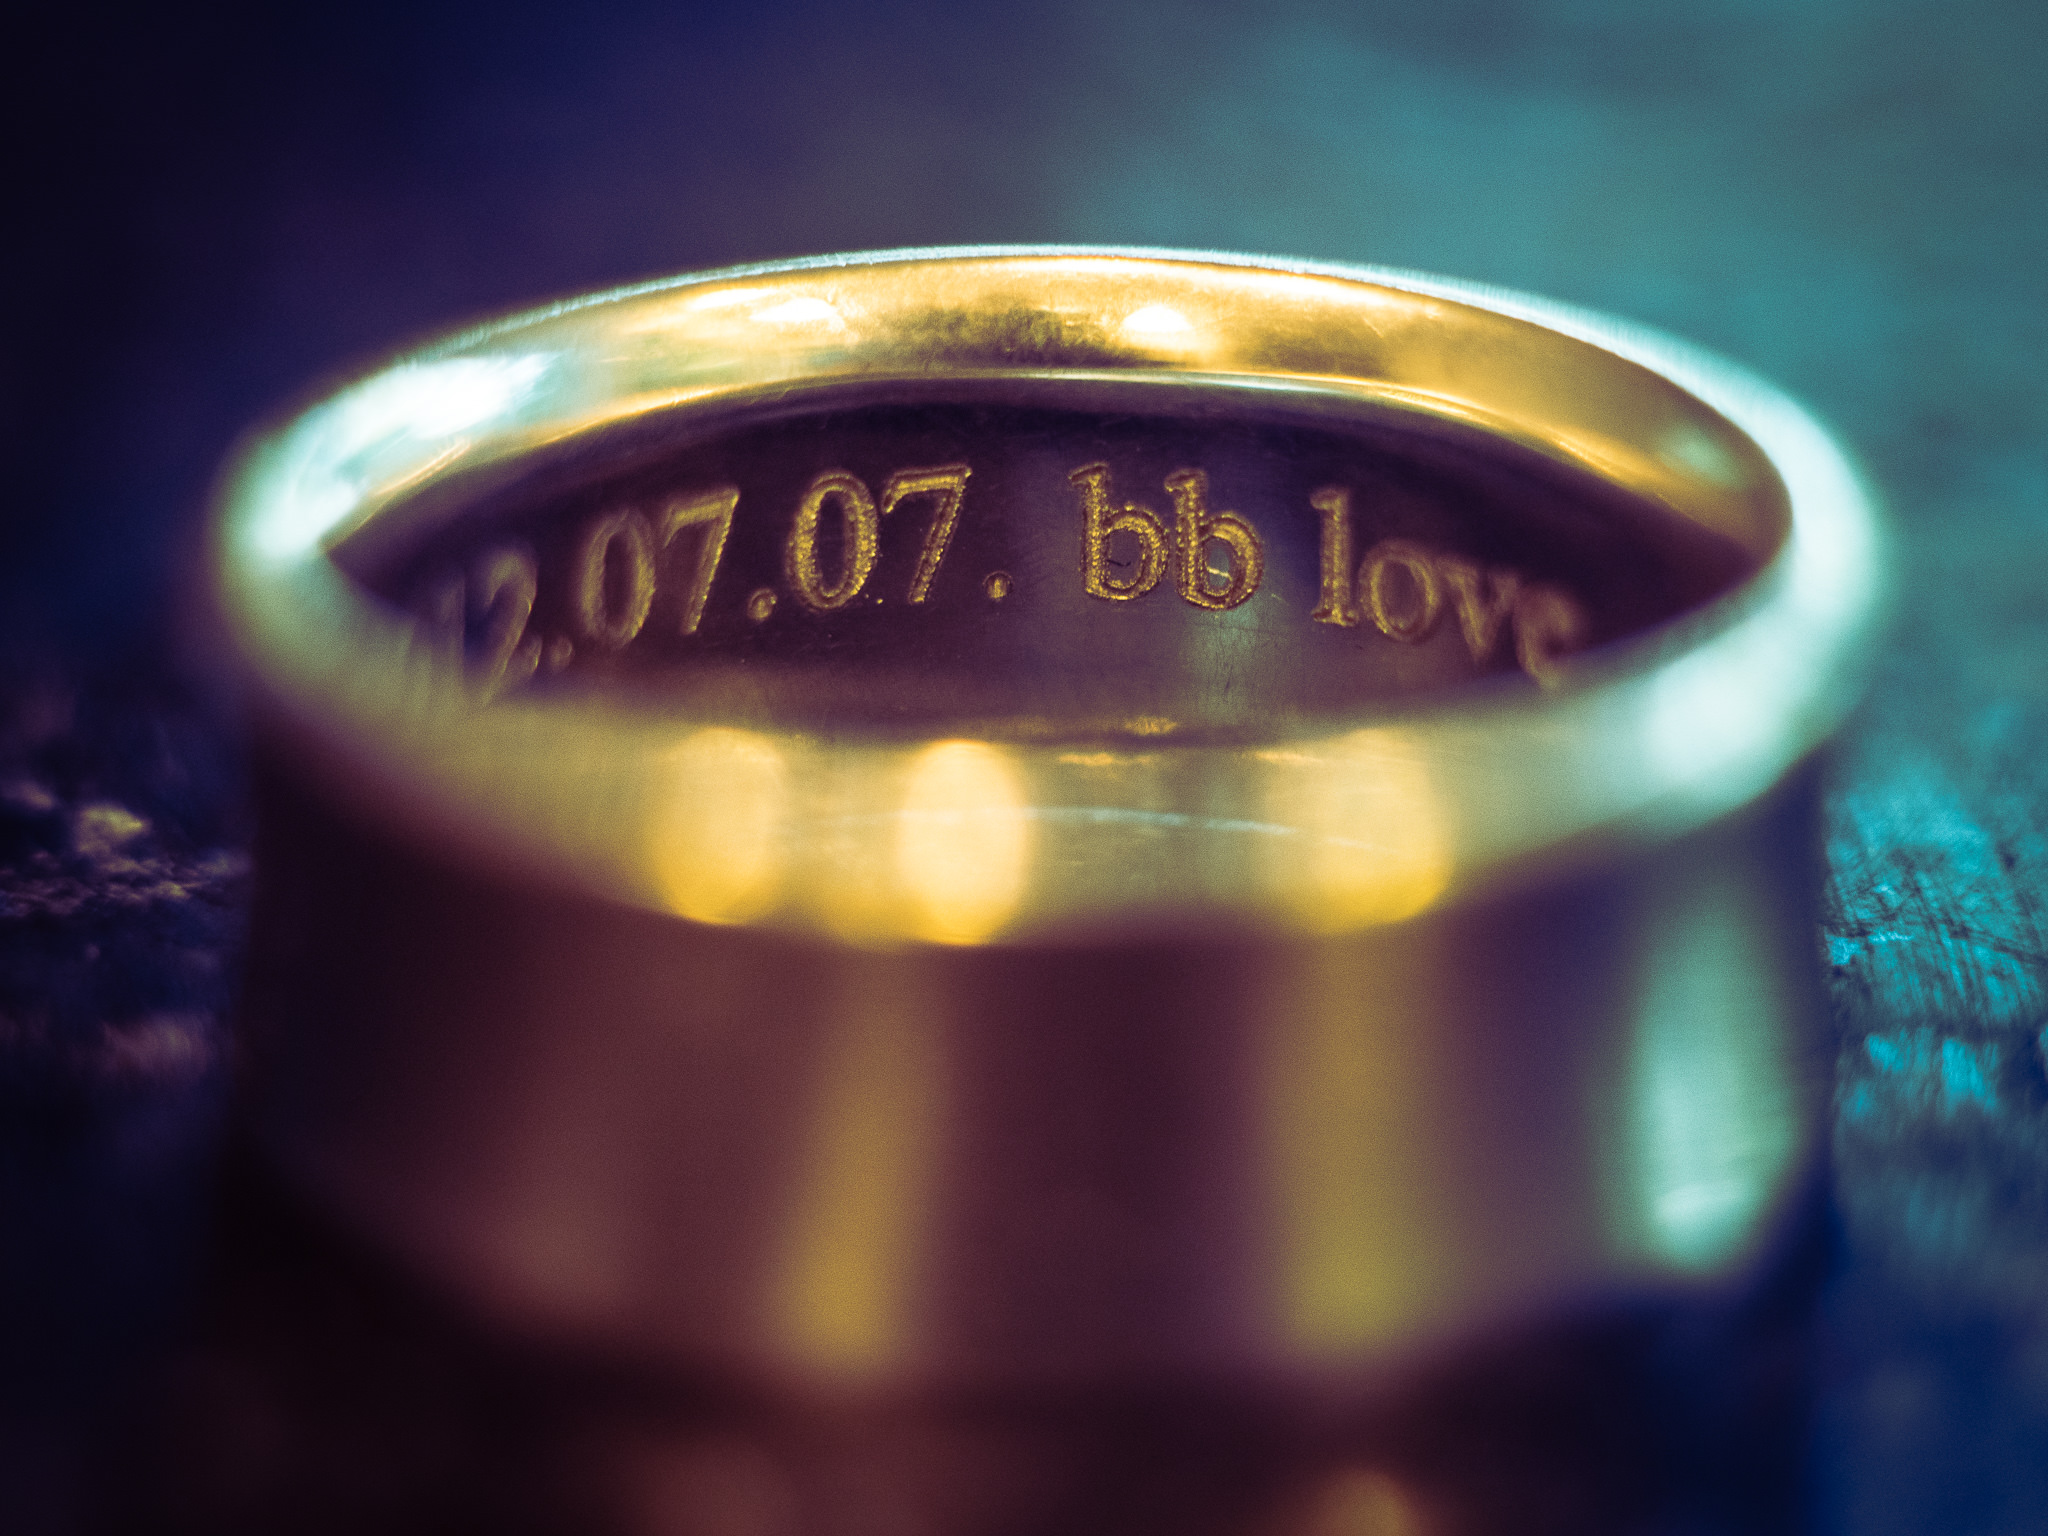 Wedding ring photographed with a Helios 44-2 2/58 lens and macro extension tubes